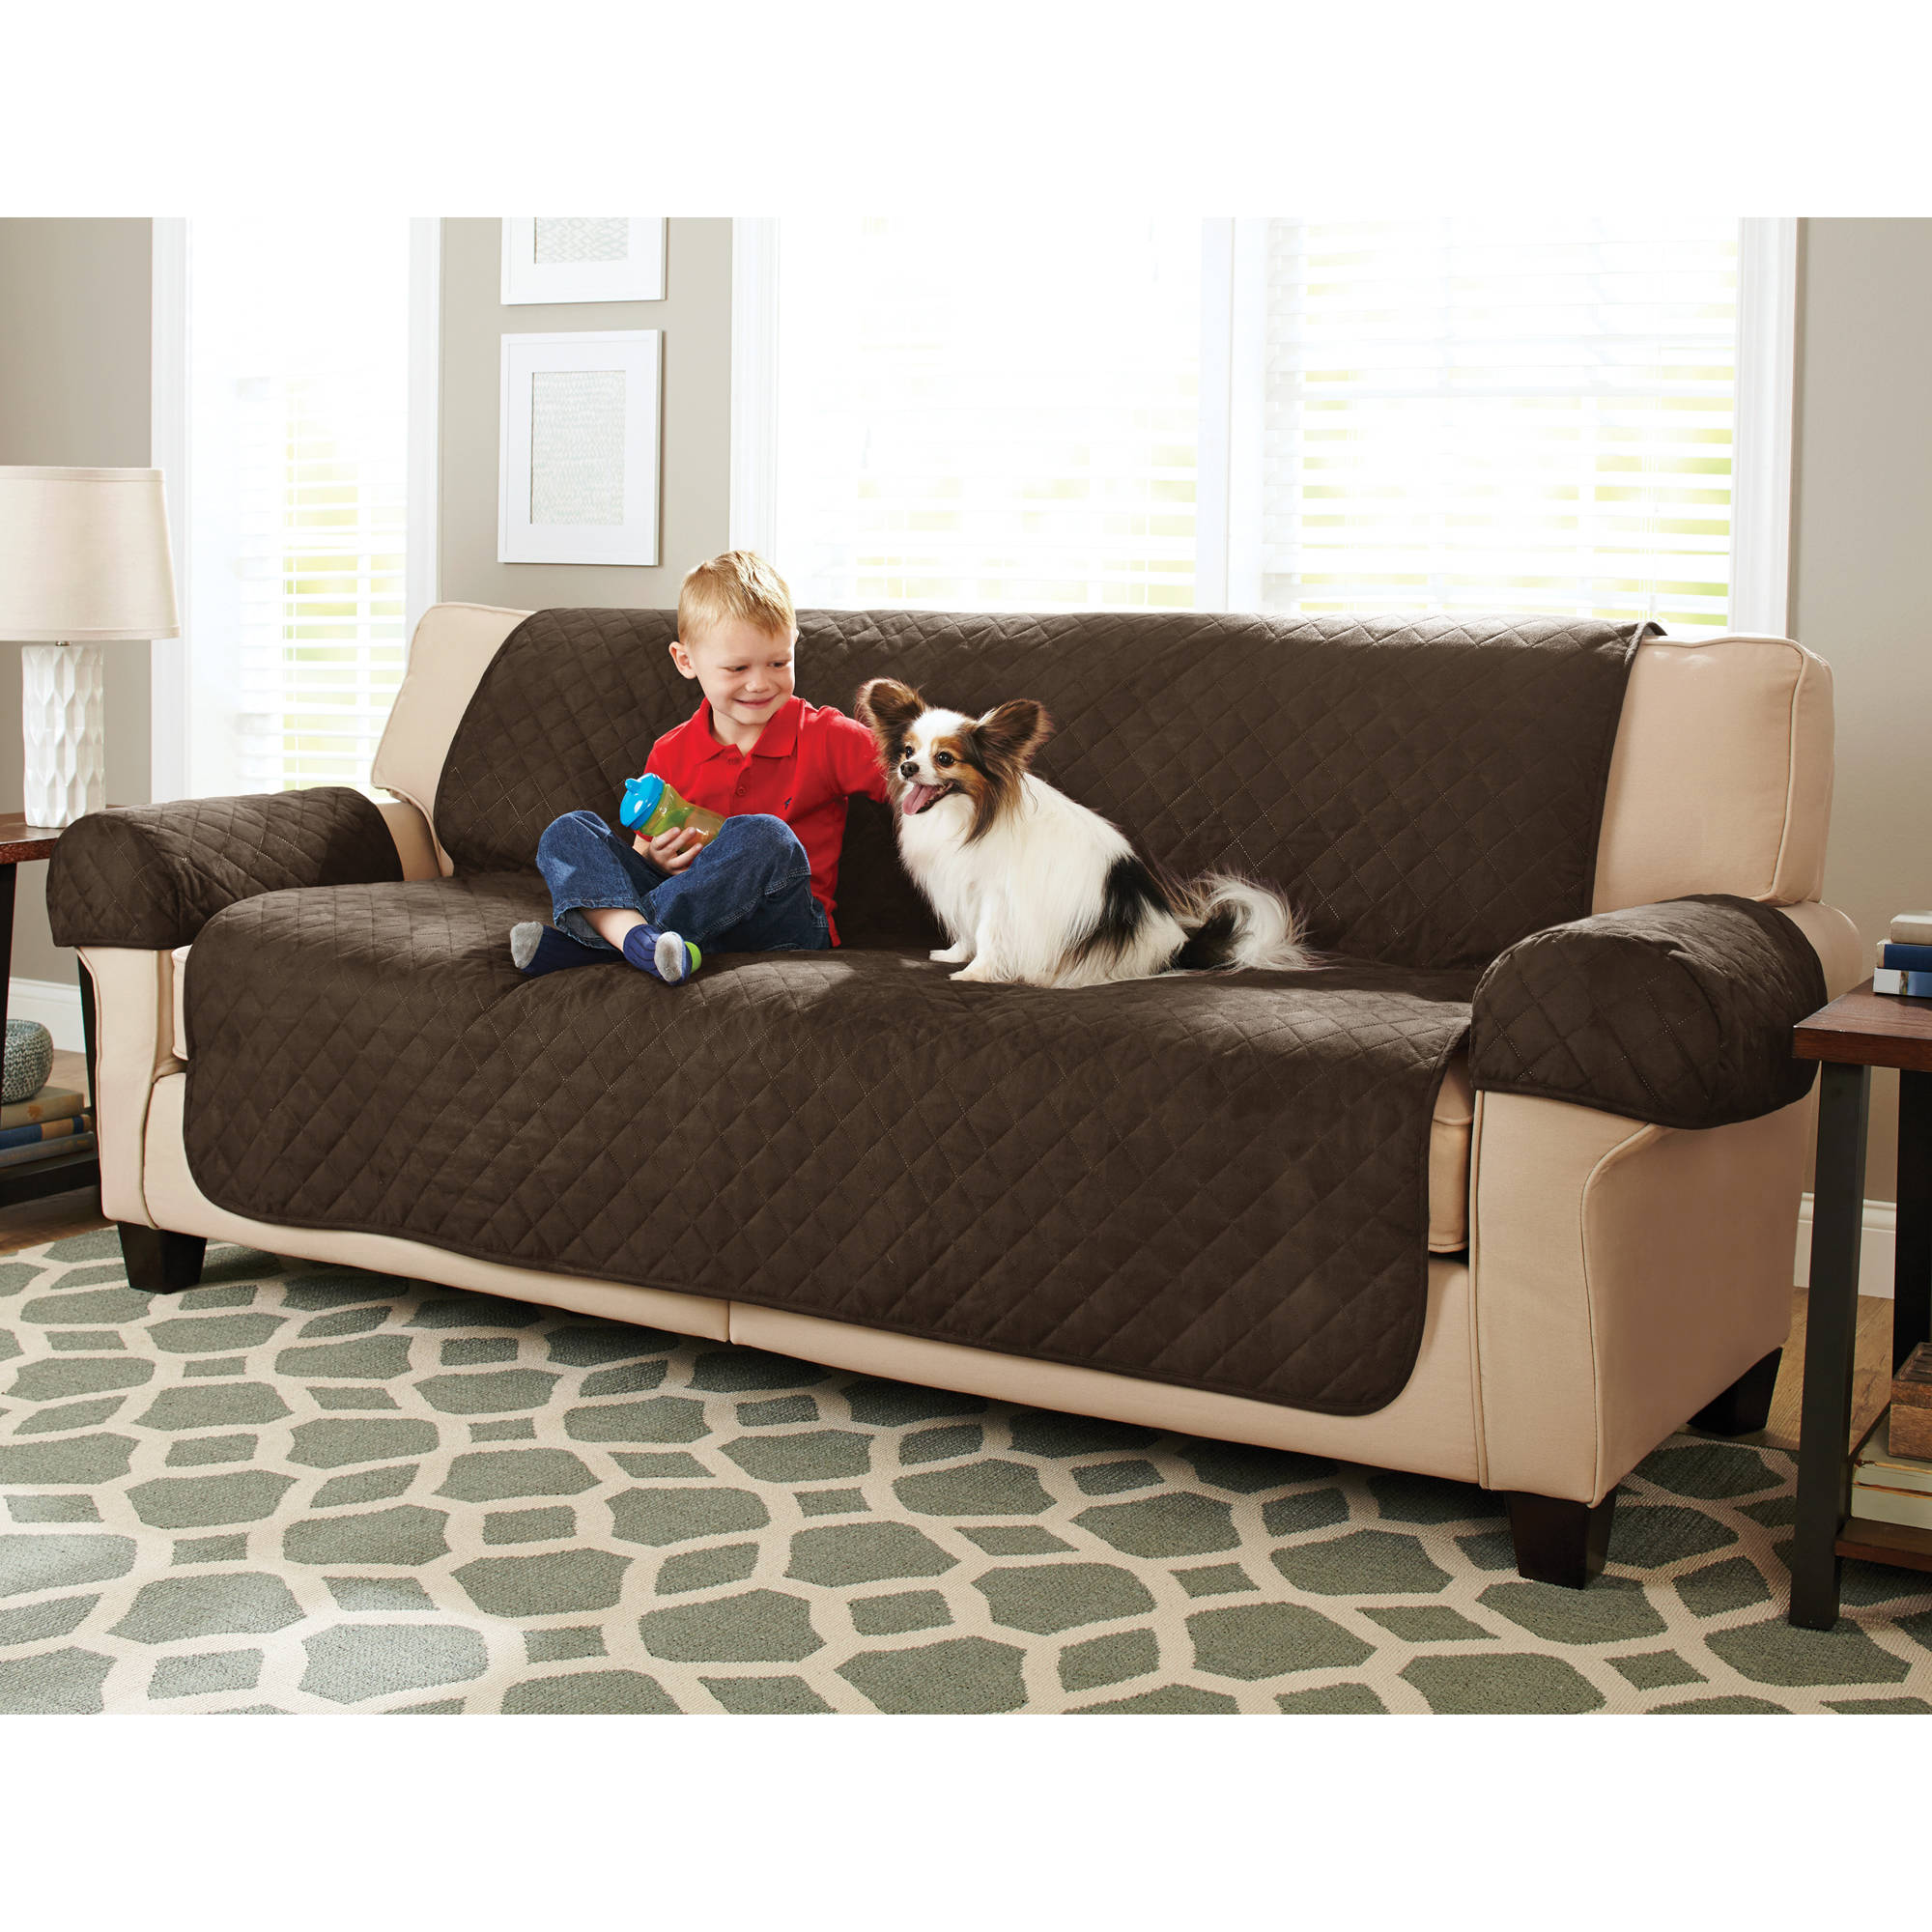 Better Homes And Gardens Waterproof Non Slip Sofa Furniture Pet Cover